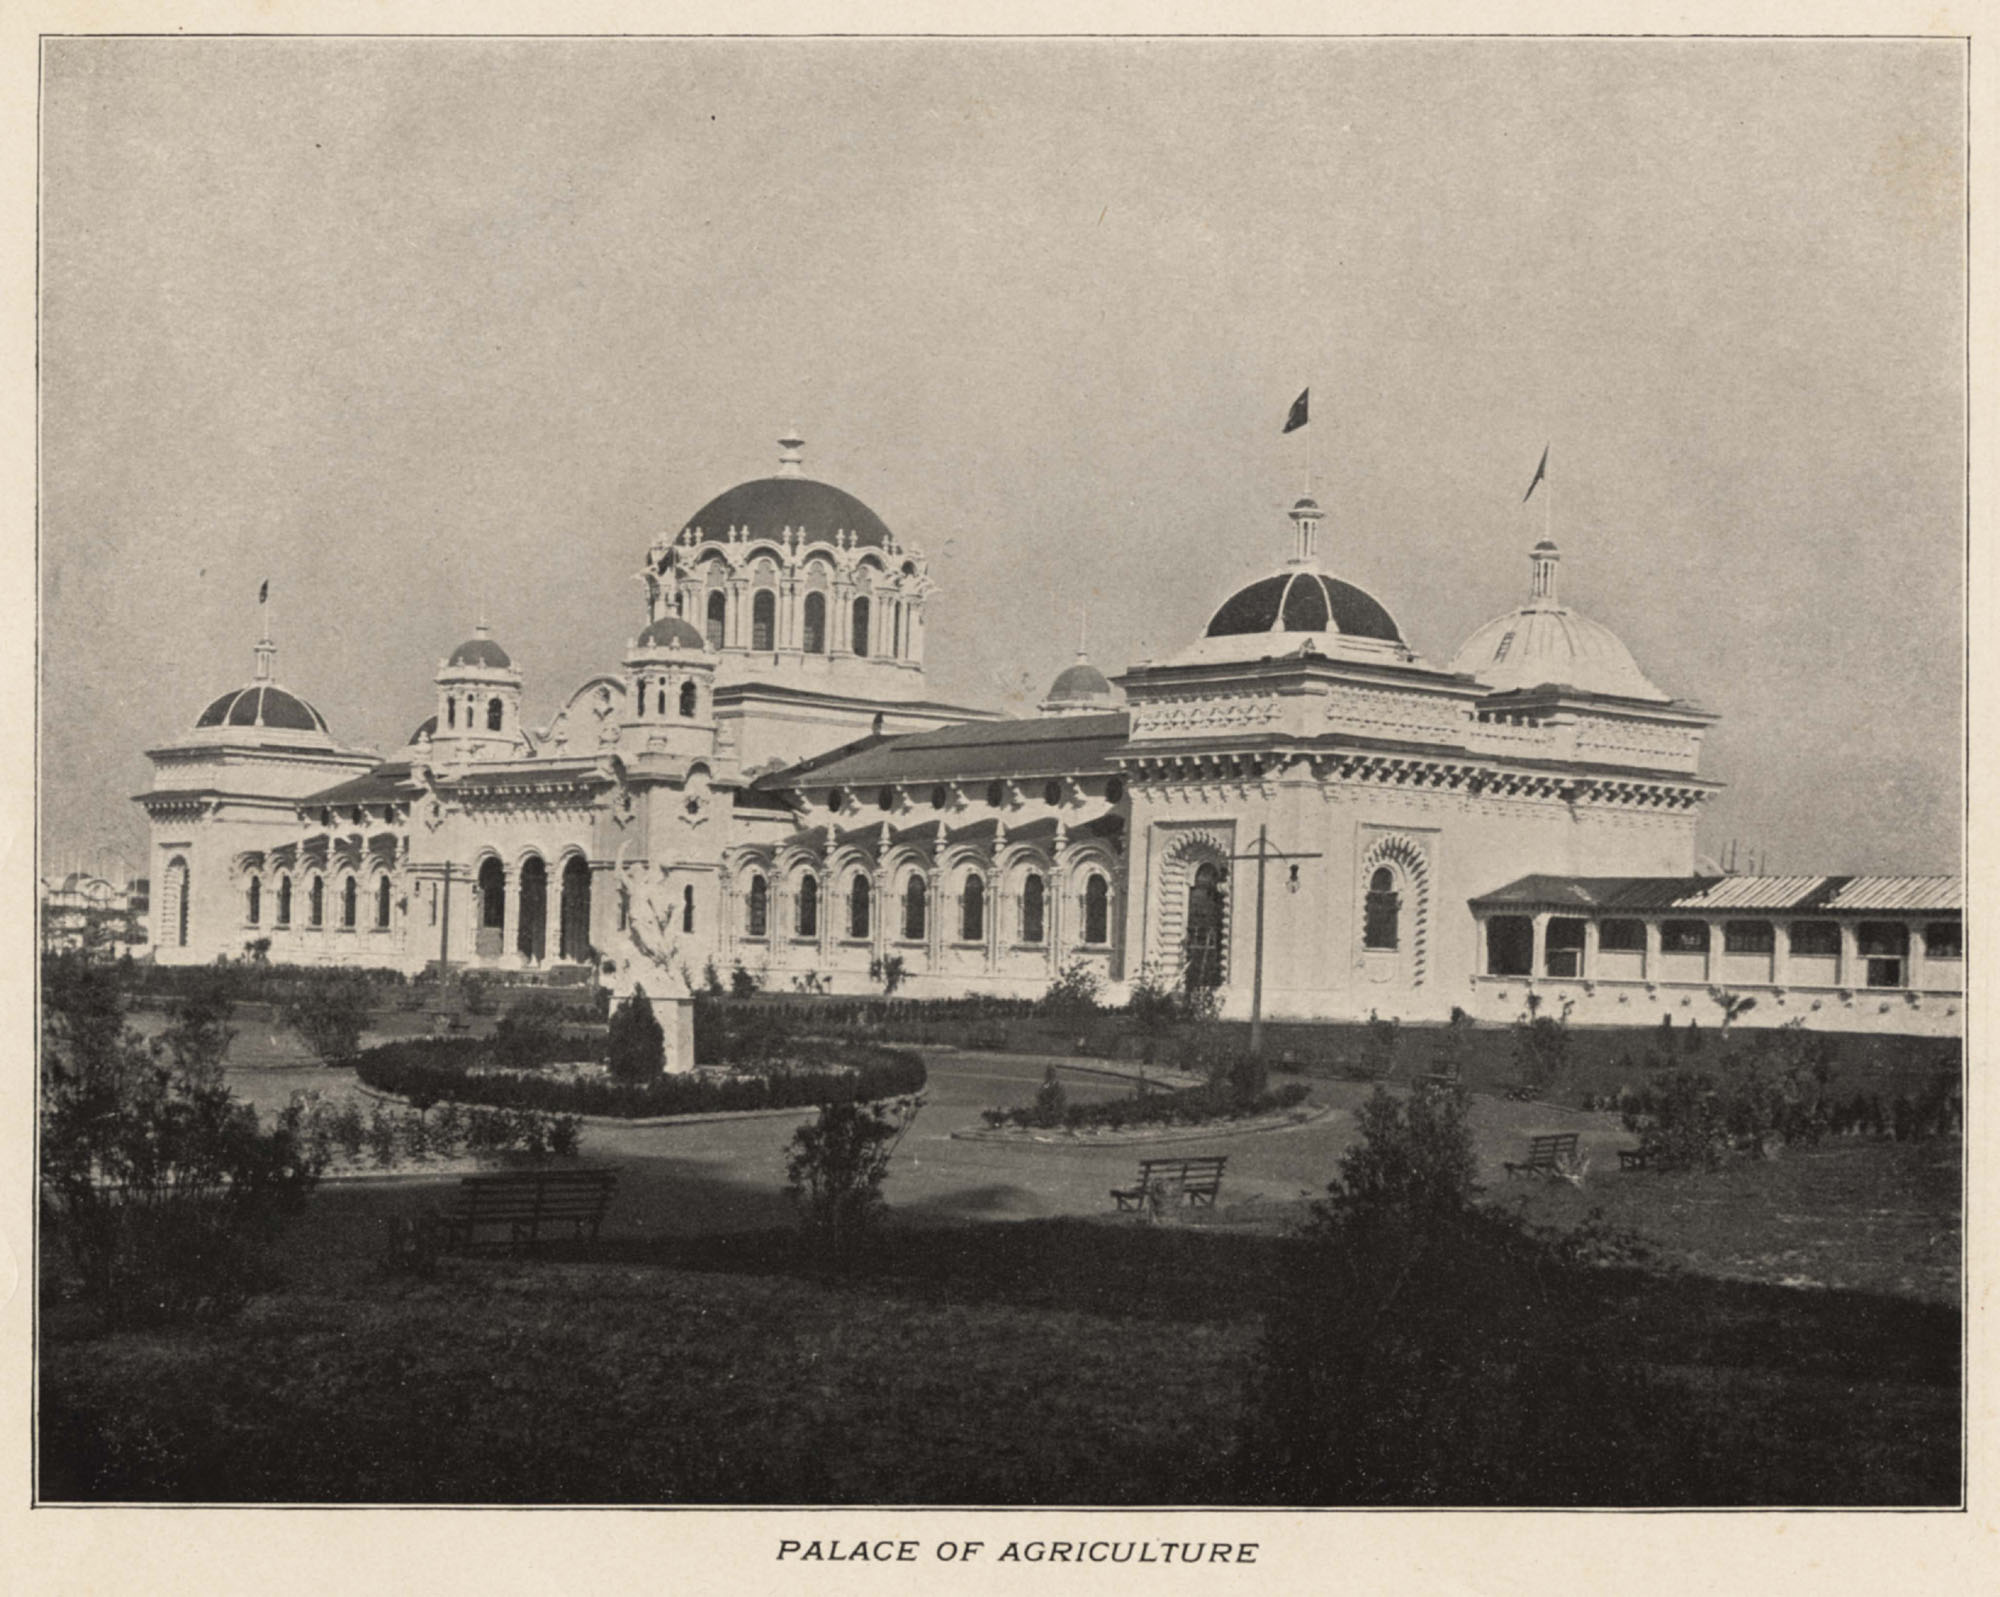 Palace of Agriculture